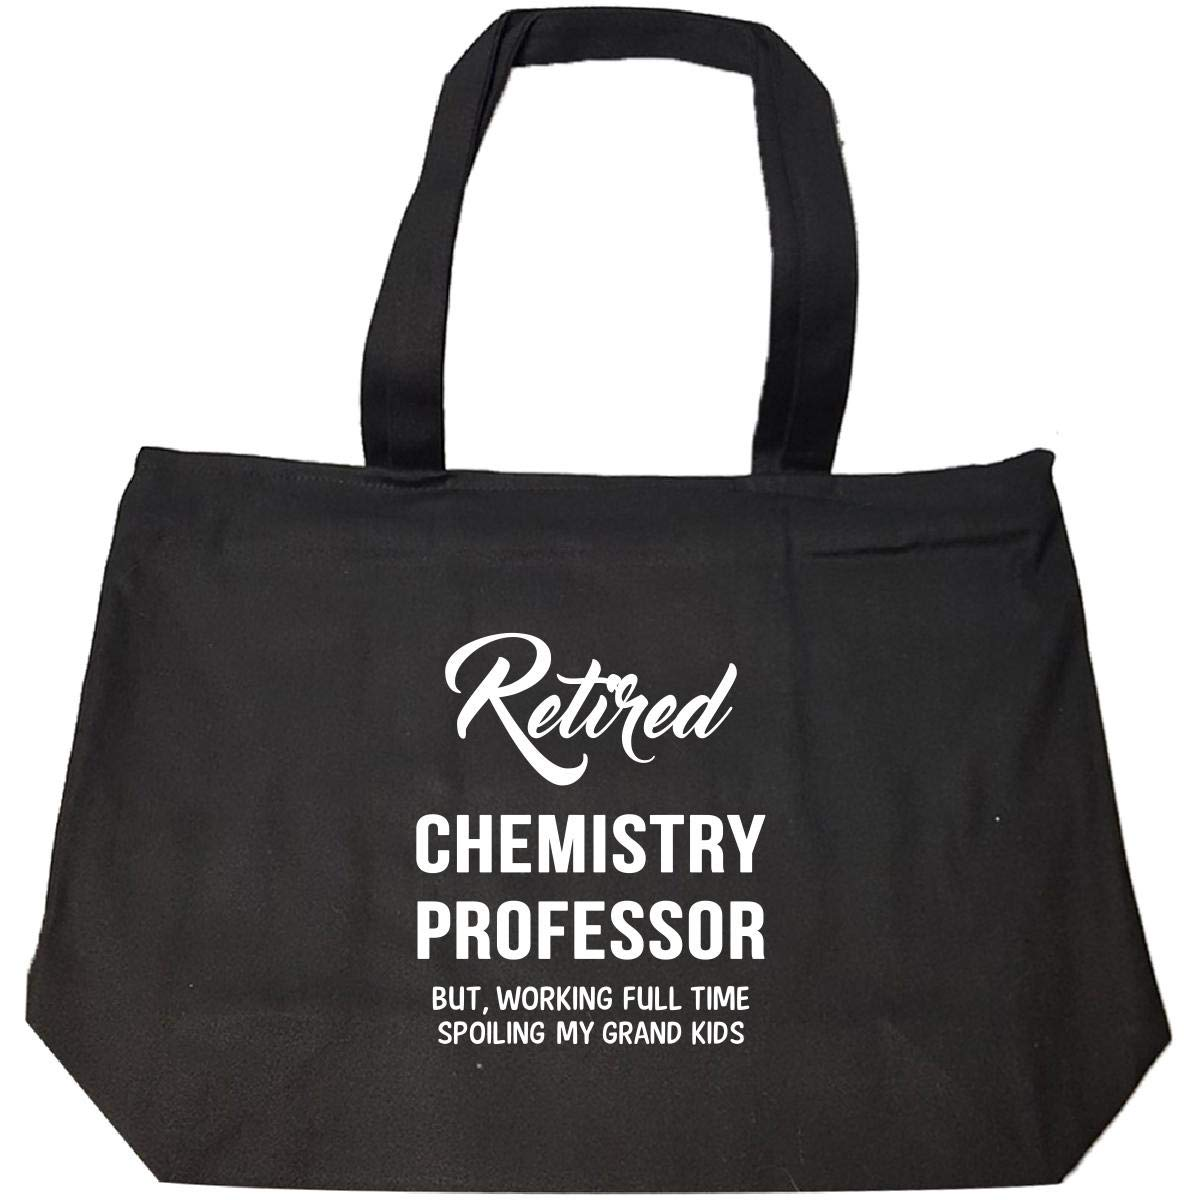 Retired Chemistry Professor Spoiling Grand Kids - Tote Bag With Zip